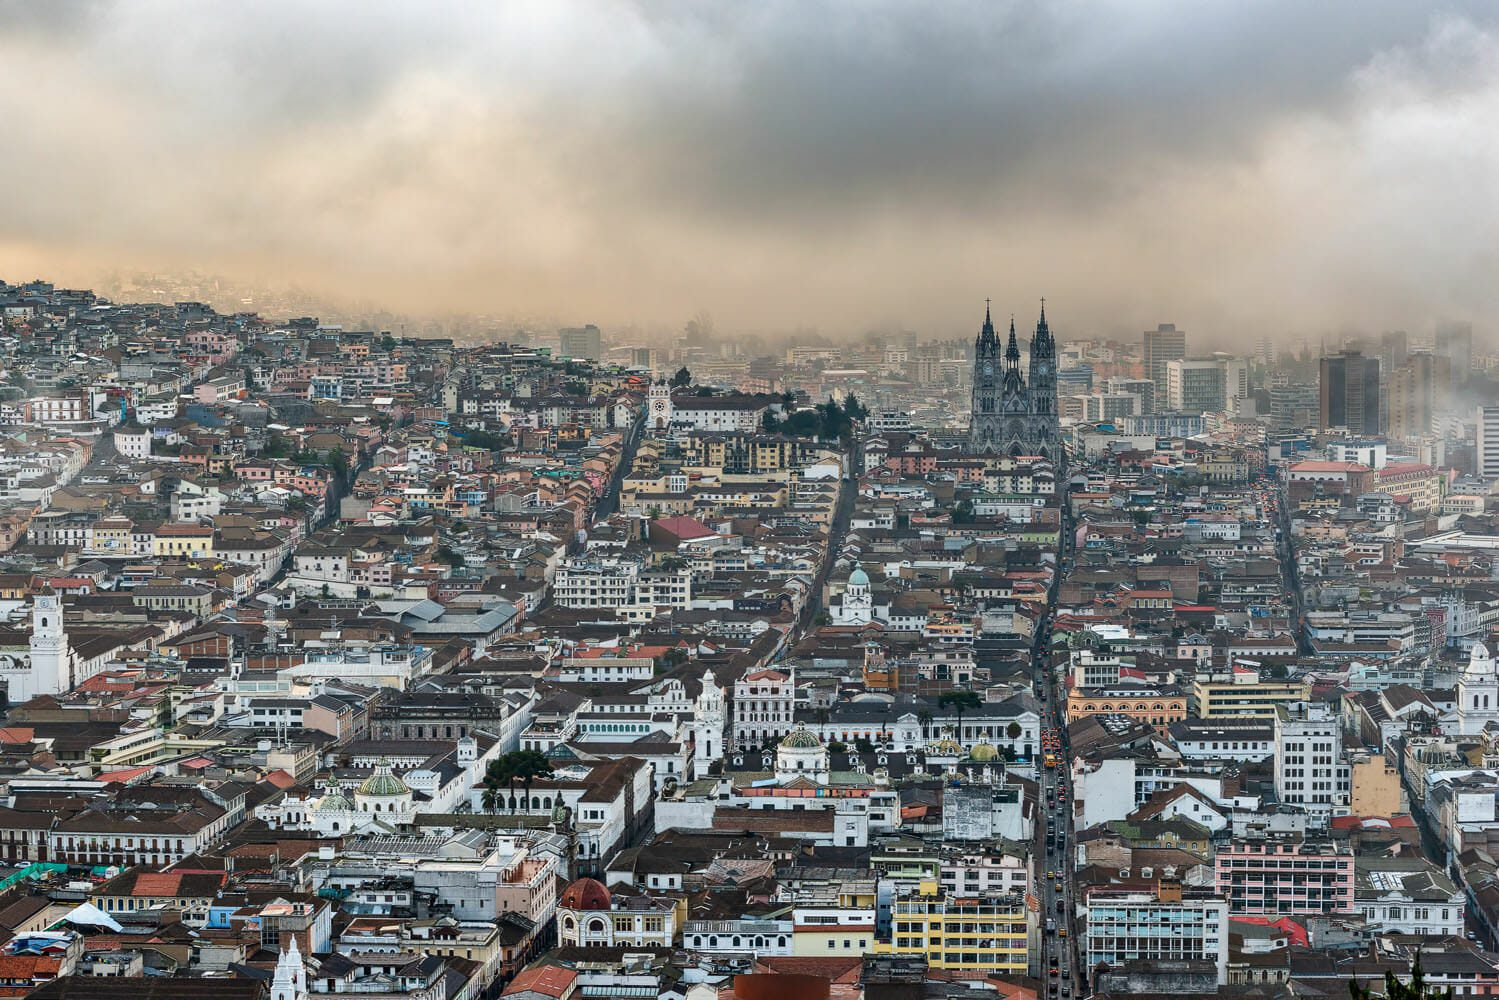 Bird's eye view on the old historic town of Quito